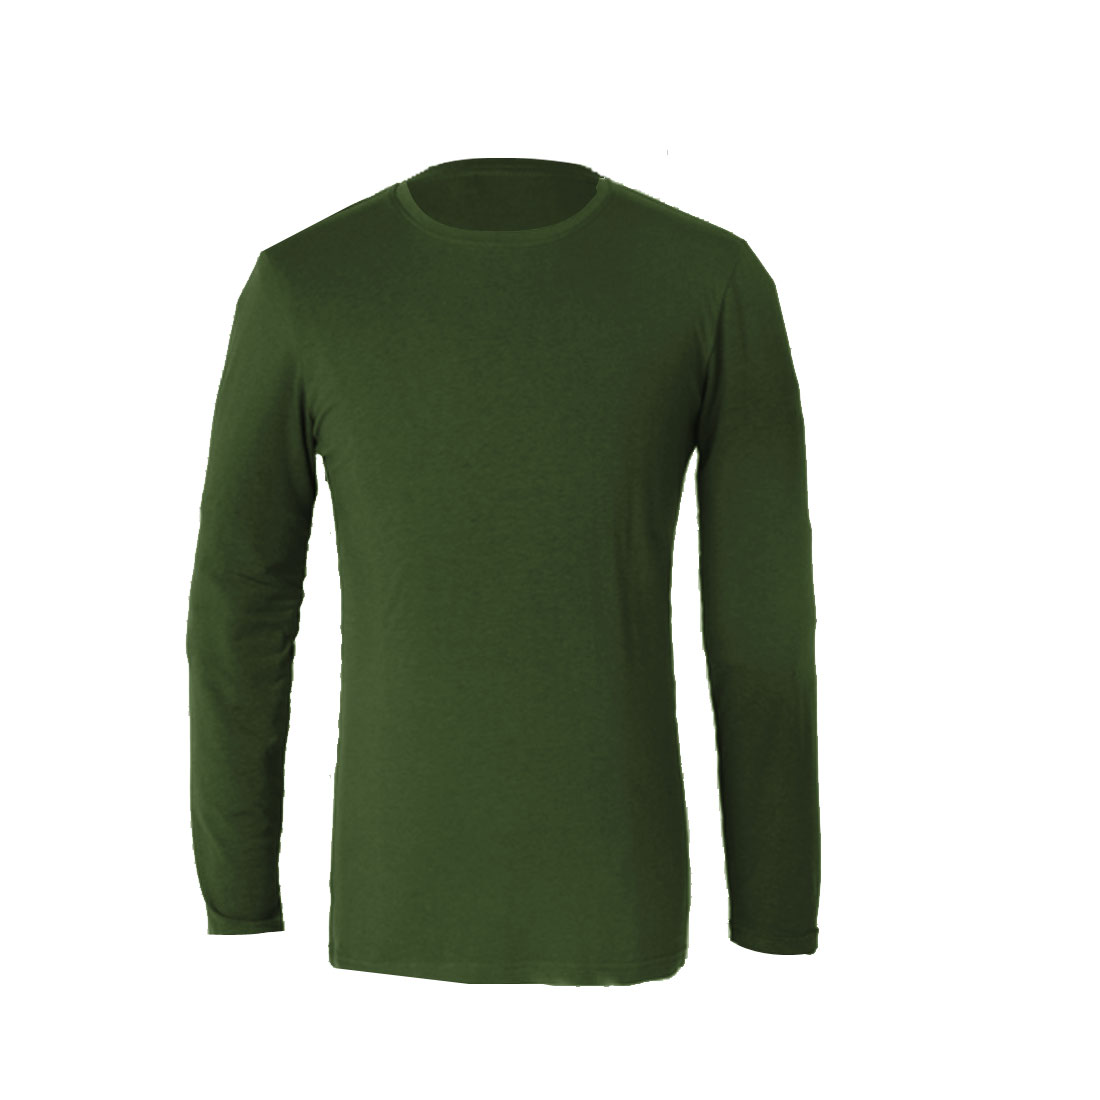 Man Stylish Army Green Color Round Neck Long Sleeve Casual Top Shirt S